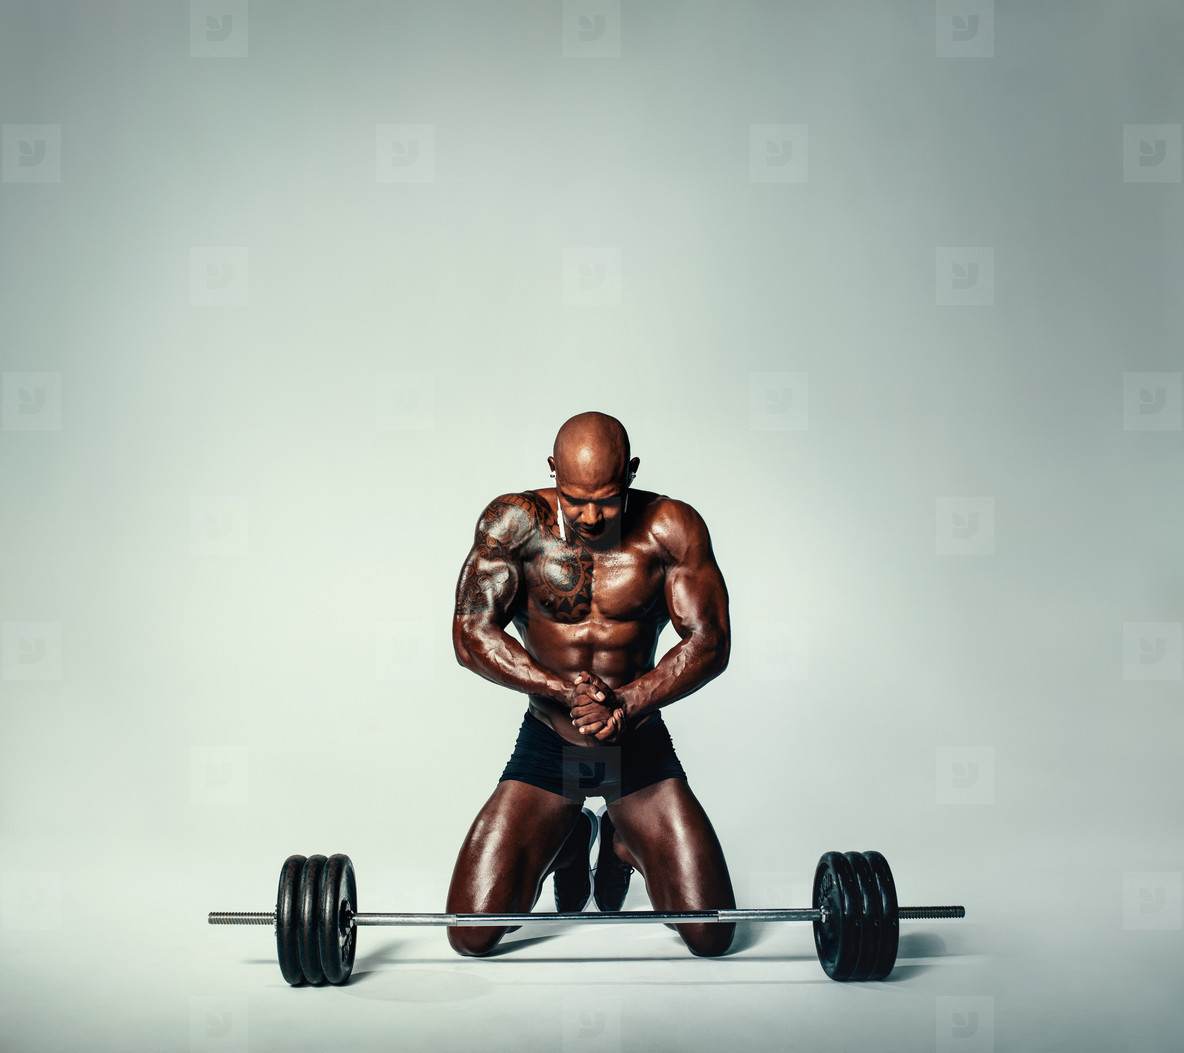 Muscular young man working out with heavy weights